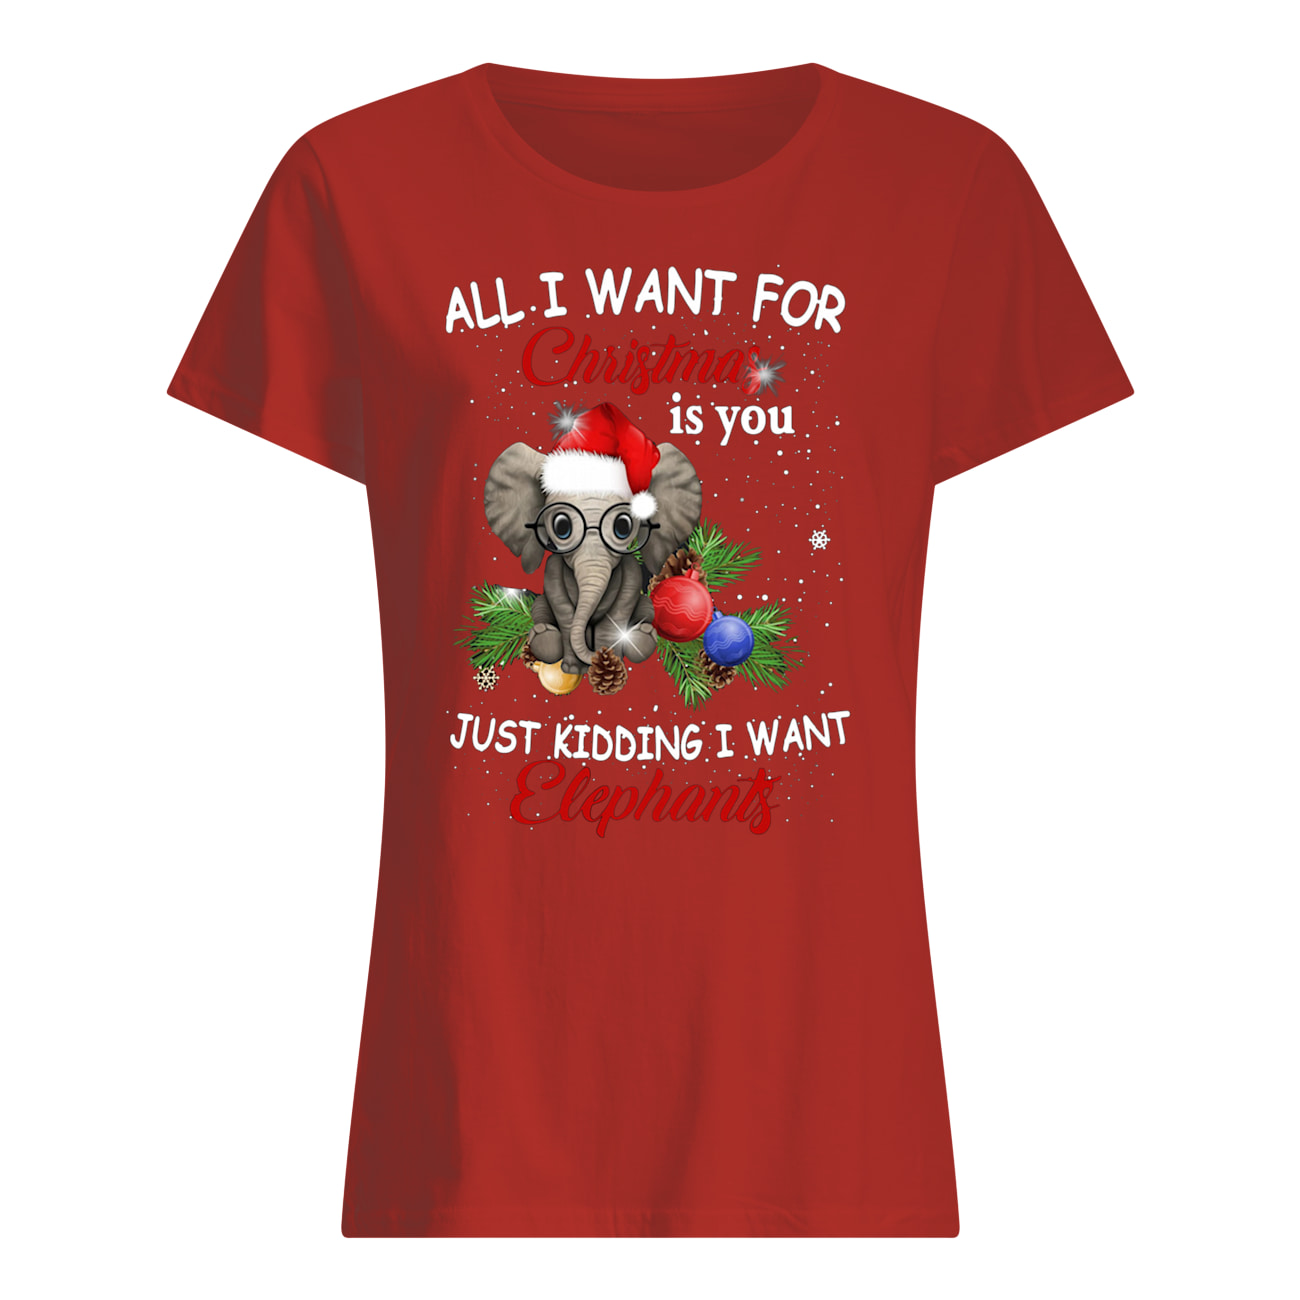 All i want for christmas is you just kidding i want elephant womens shirt